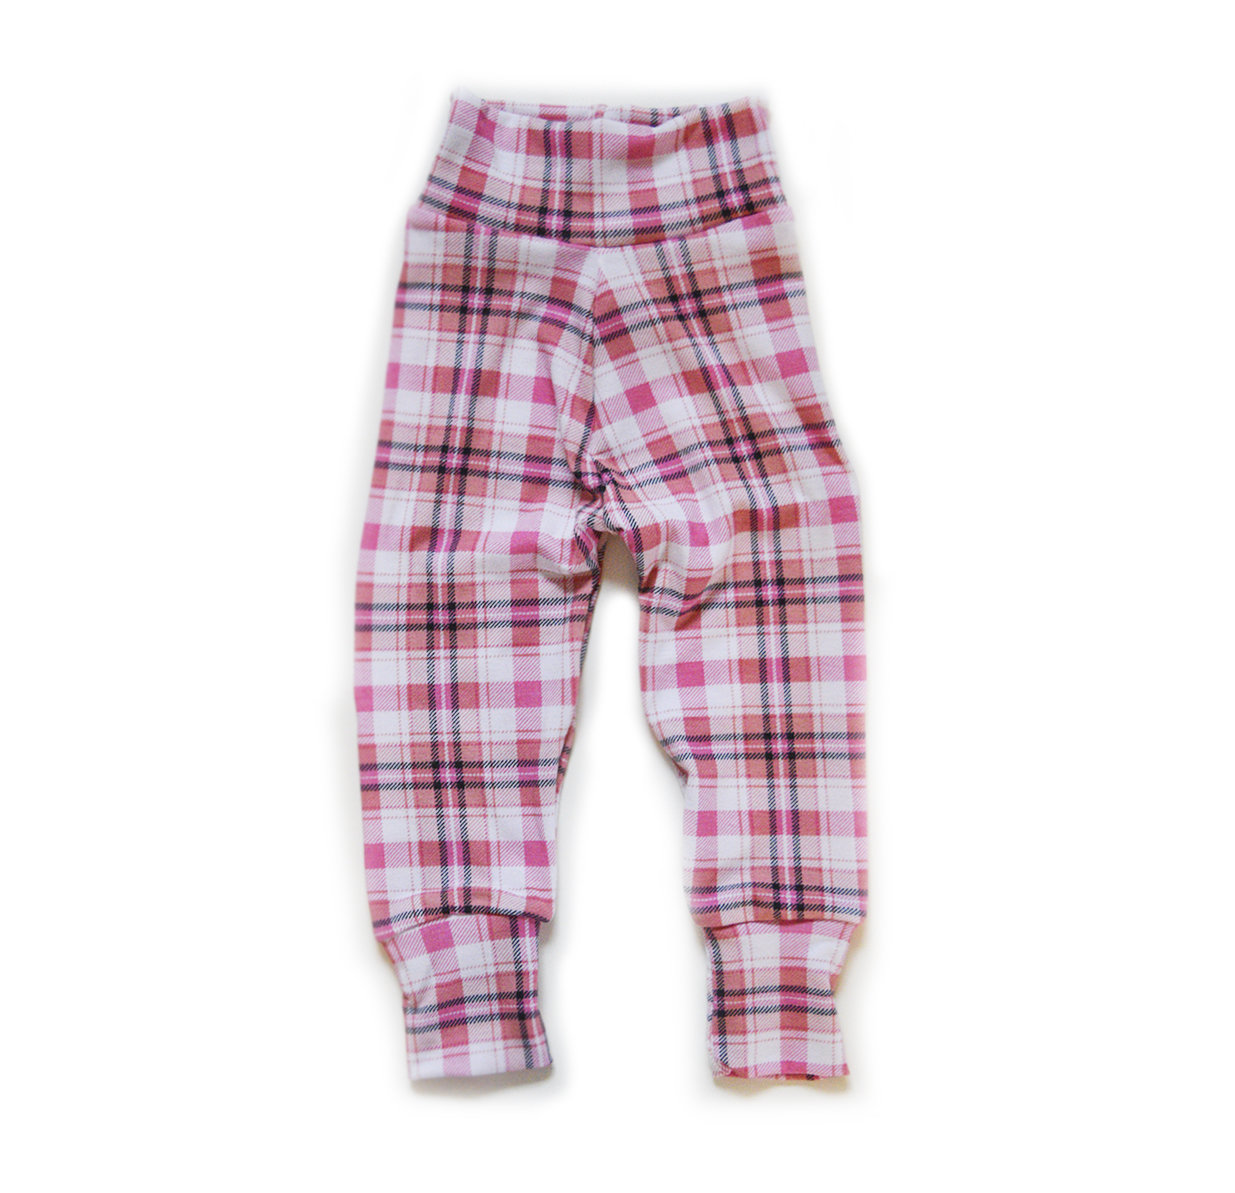 Little Sprout Pants™ Pink Tartan - Lightweight Stretch Fit slim 00415